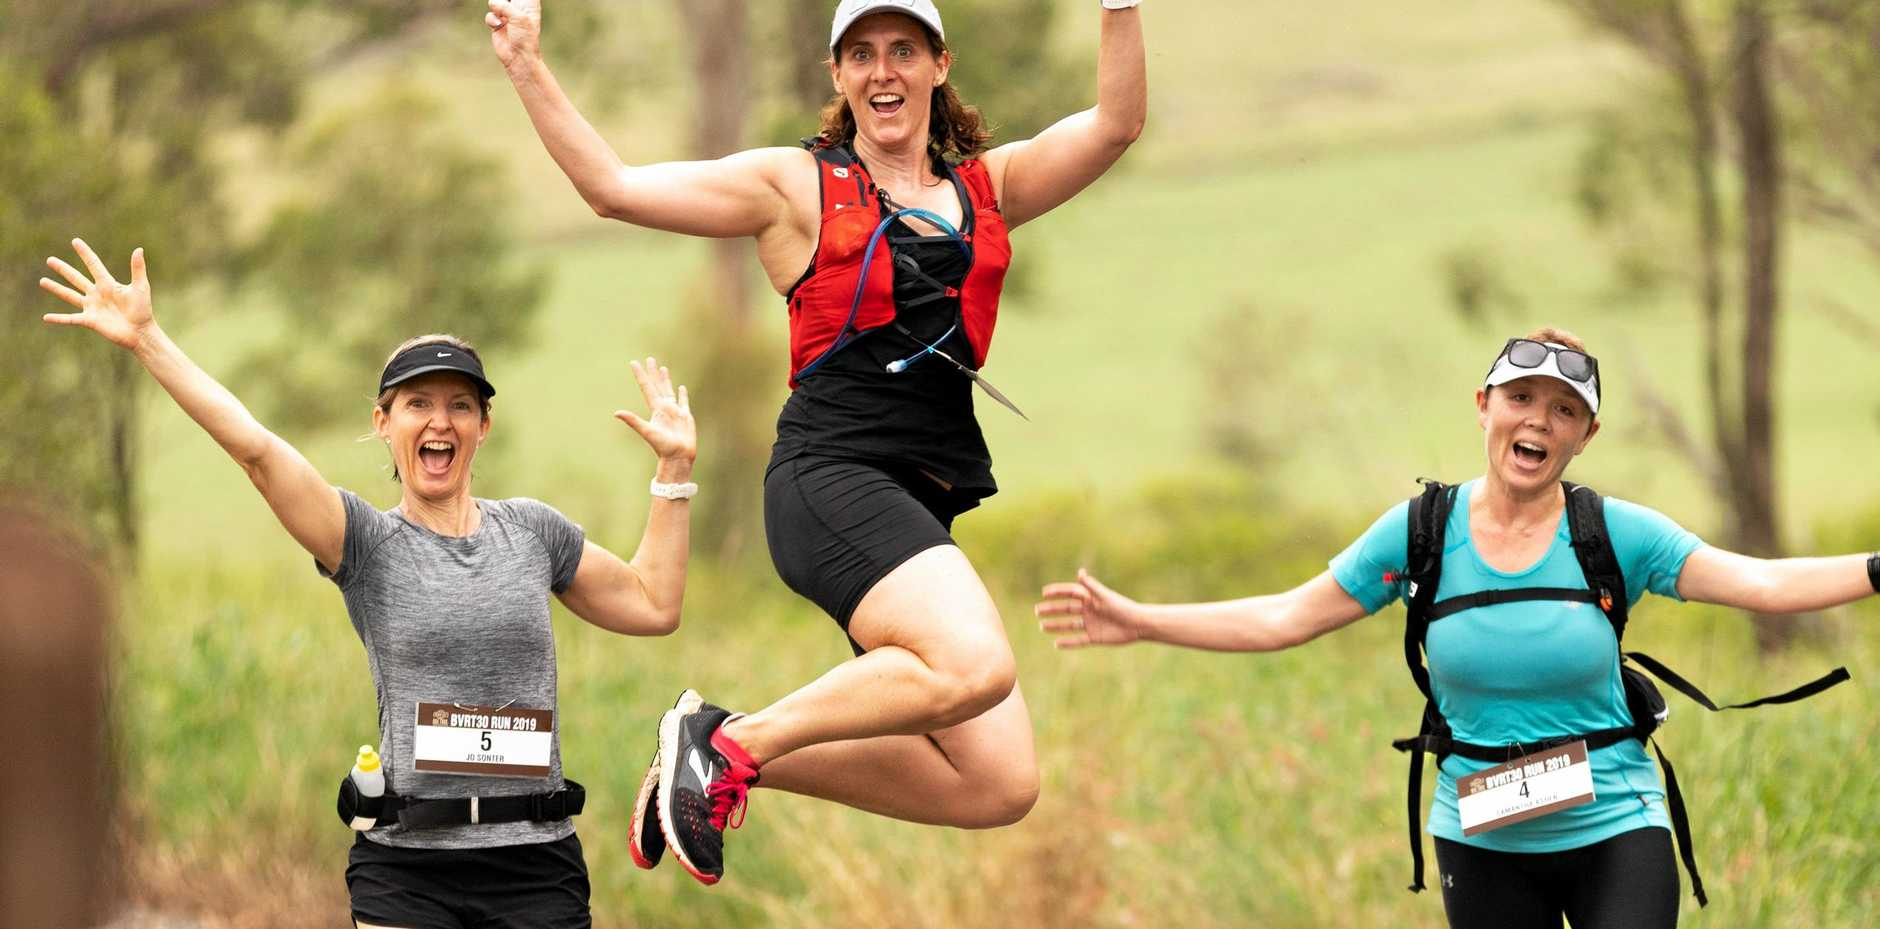 JUMP FOR JOY: More than 100 runners took part in the BVRT 30 Charity Run.